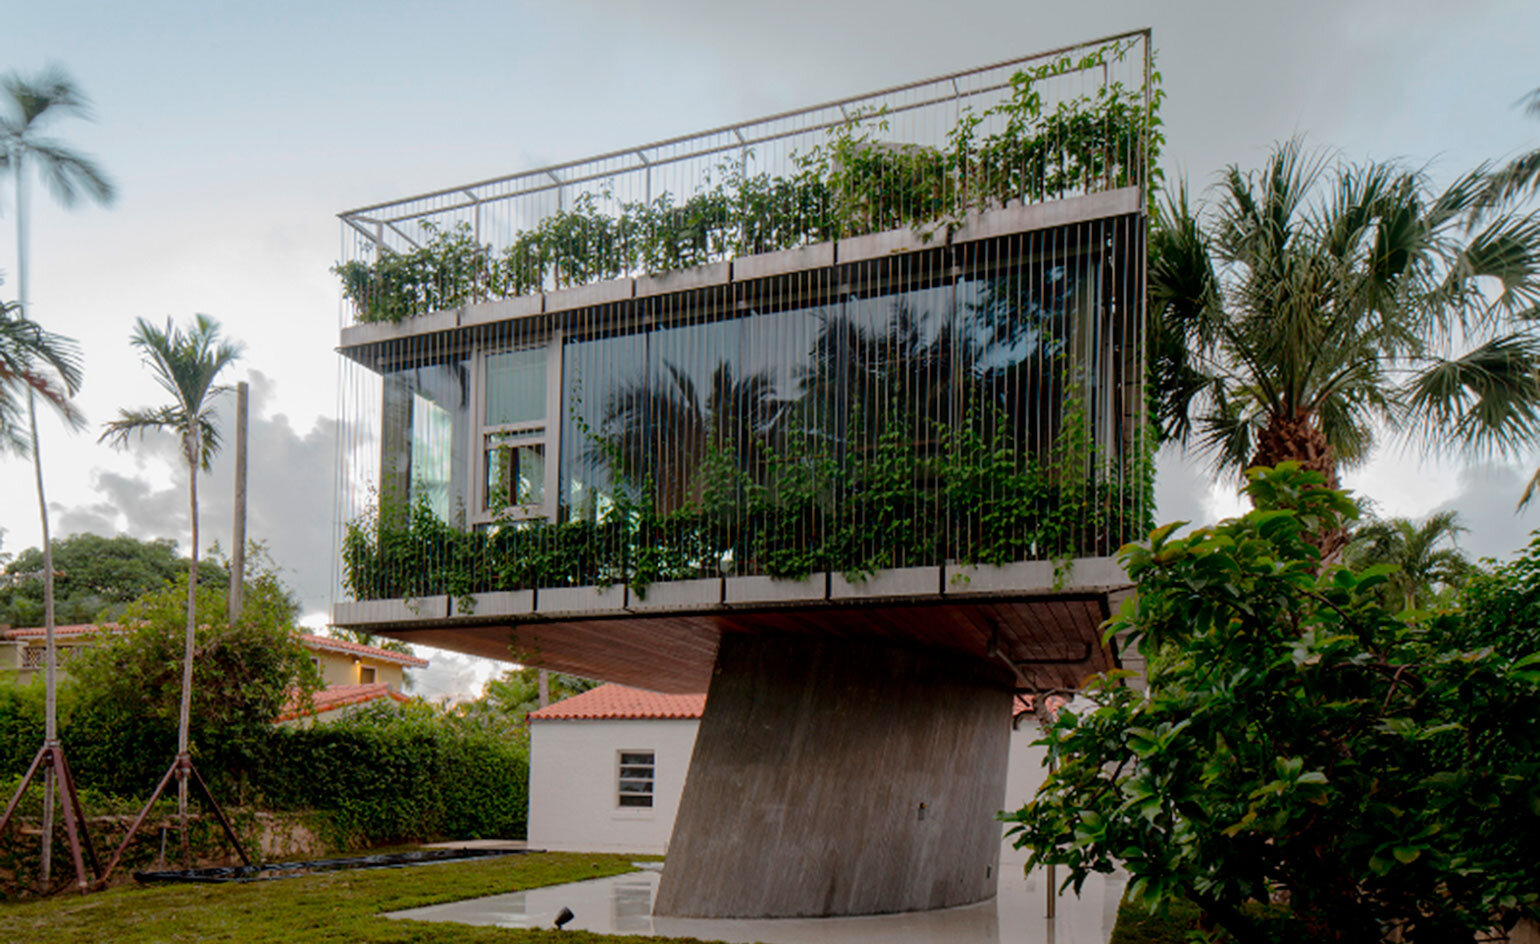 A Bungalow House from the 1930s Replaced by a Three-Story Concrete House (4)